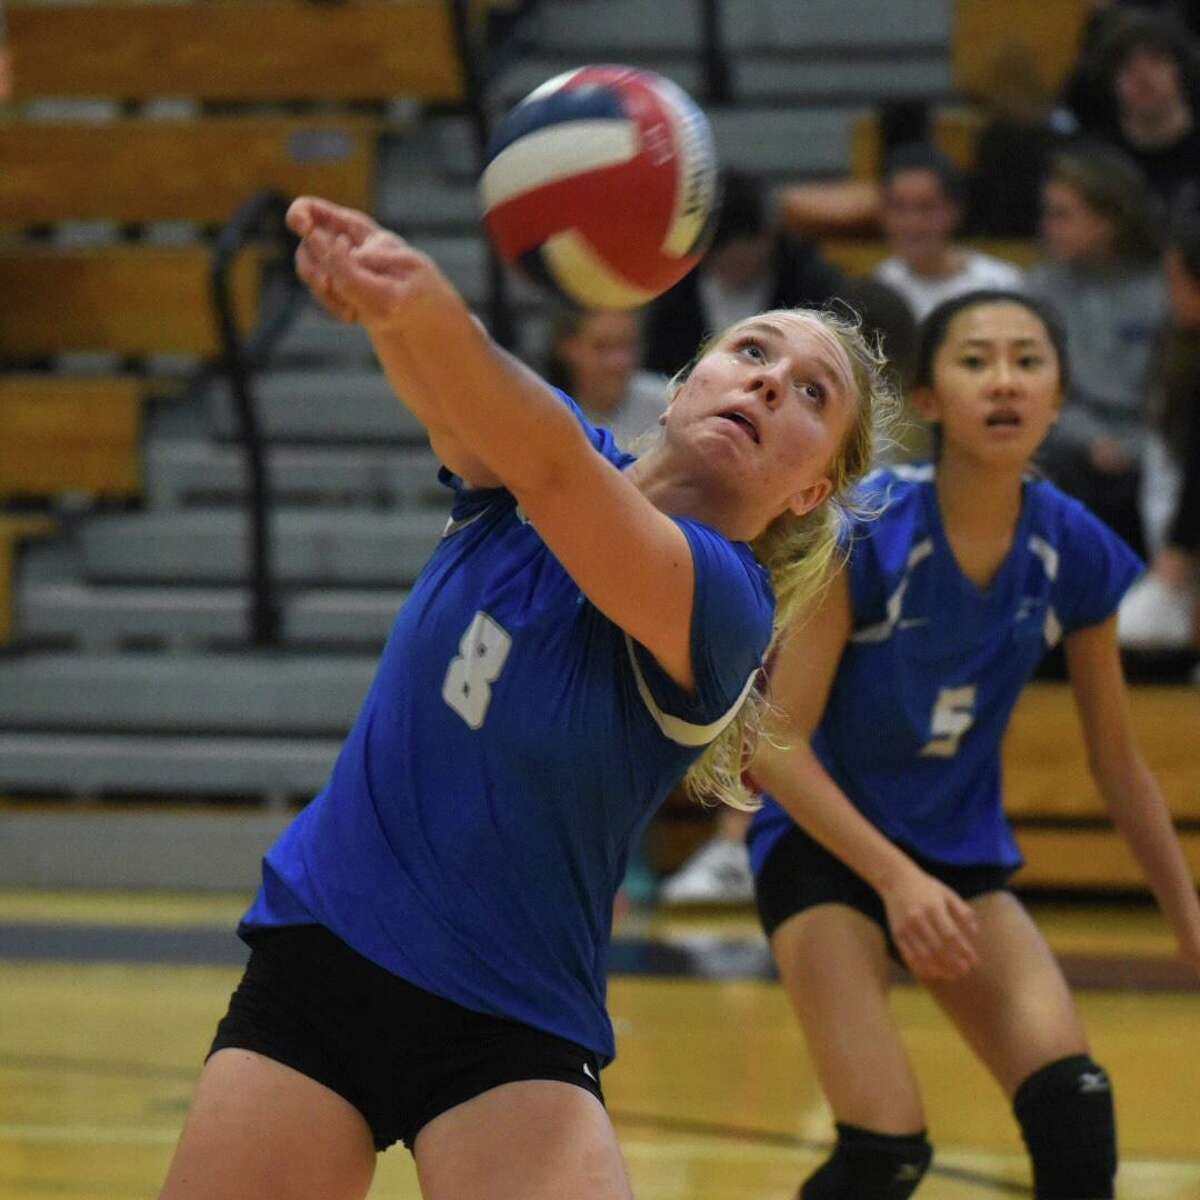 Darien's Elaina Cummiskey (8) keeps the ball alive during the Wave's volleyball match with New Canaan at Darien High School on Thursday, Oct. 17, 2019